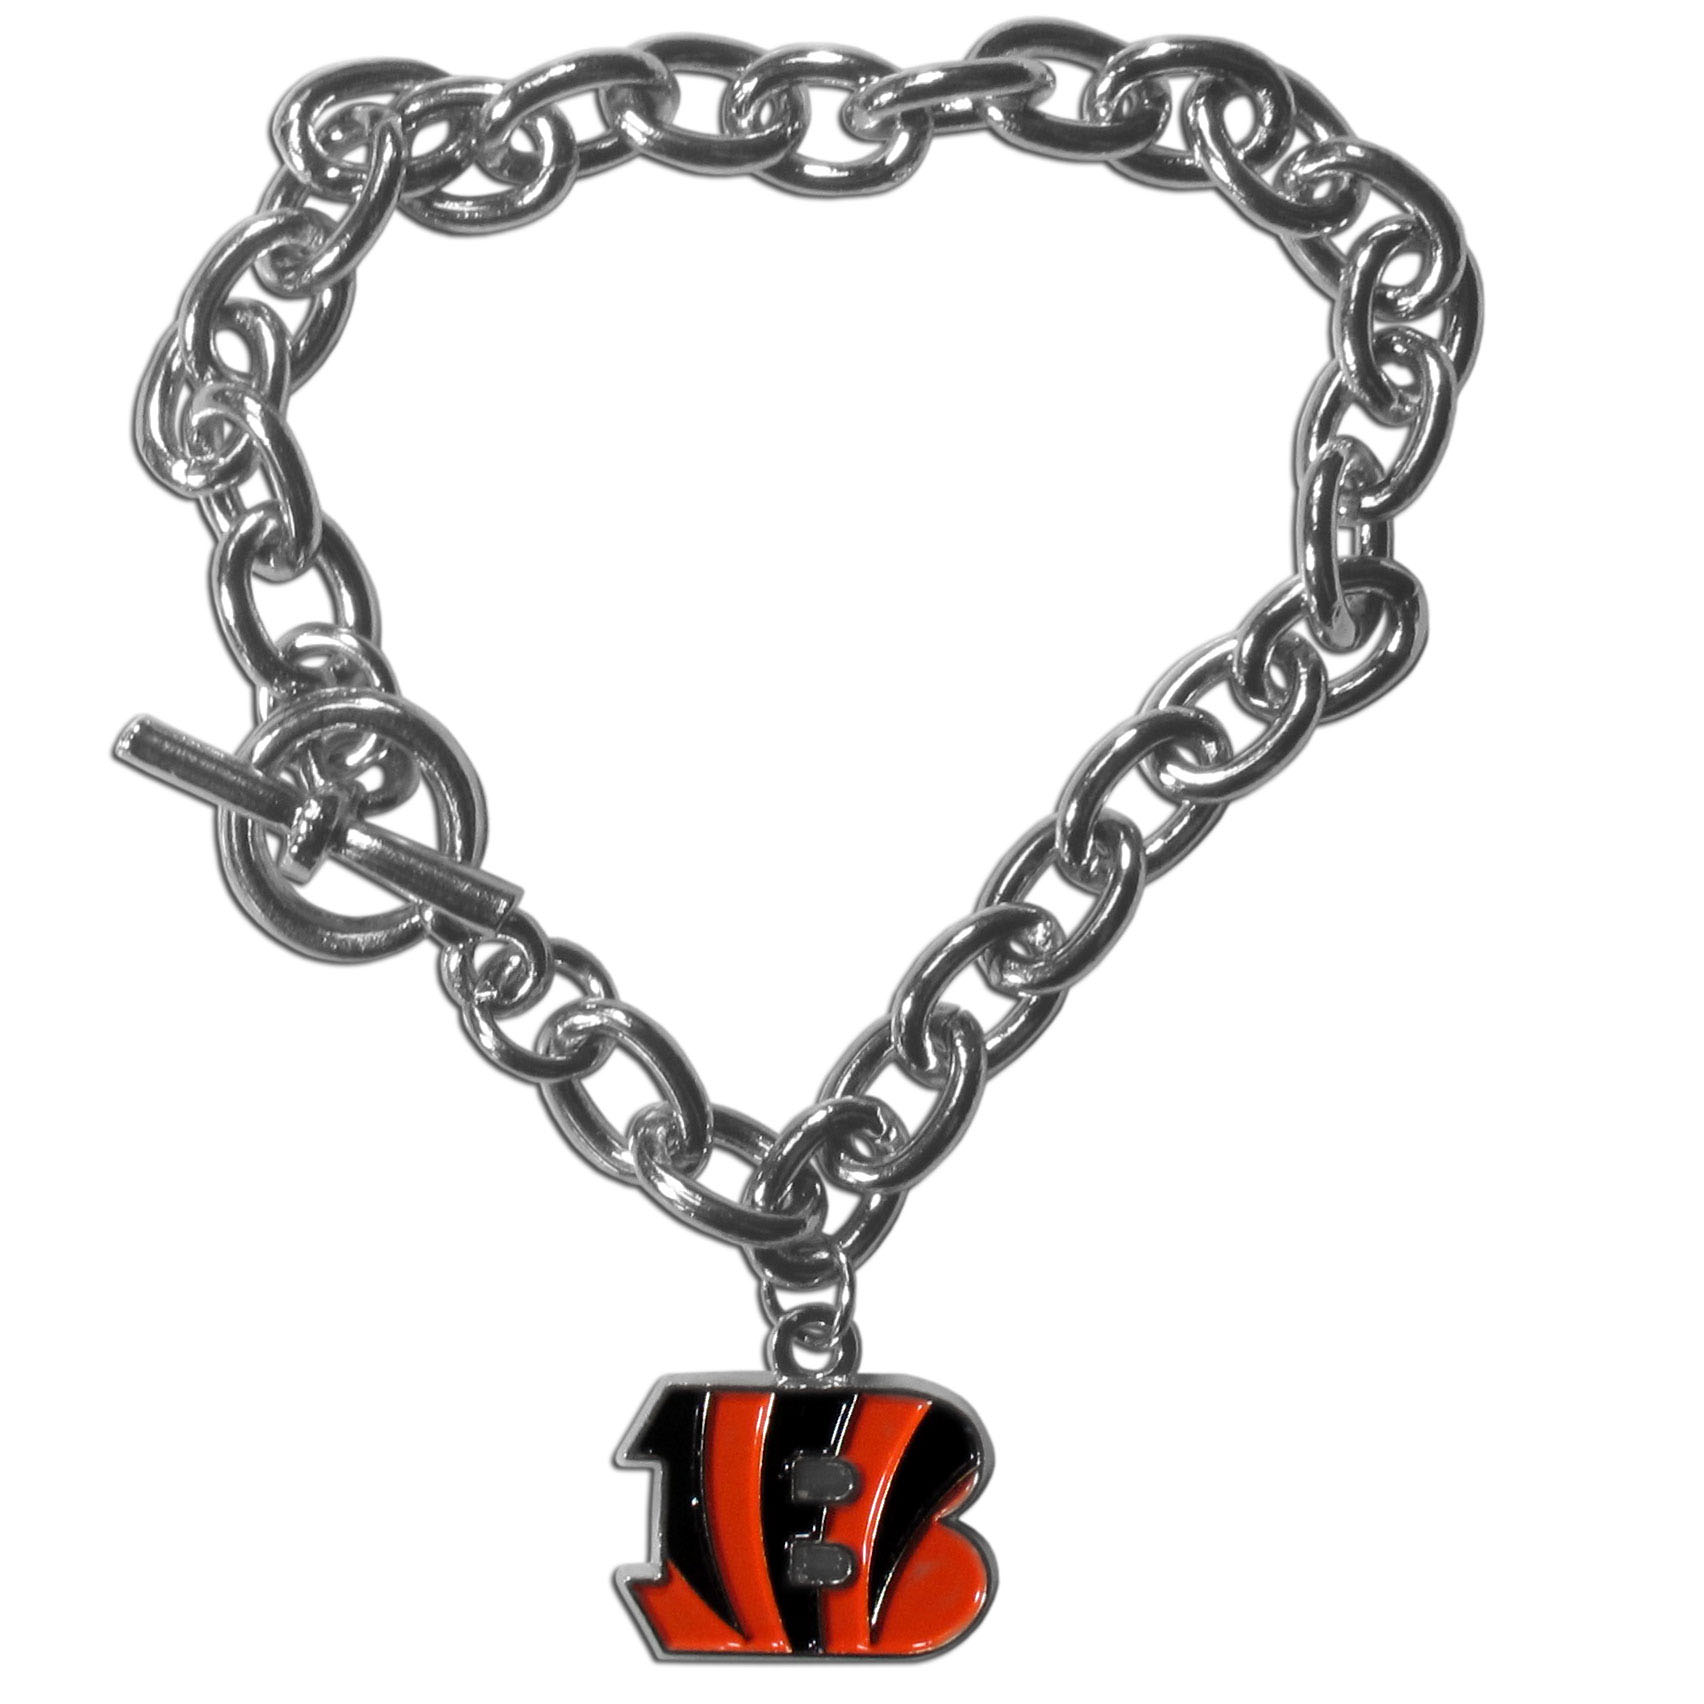 Cincinnati Bengals Charm Chain Bracelet - Our classic single charm bracelet is a great way to show off your team pride! The 7.5 inch large link chain features a high polish Cincinnati Bengals charm and features a toggle clasp which makes it super easy to take on and off.